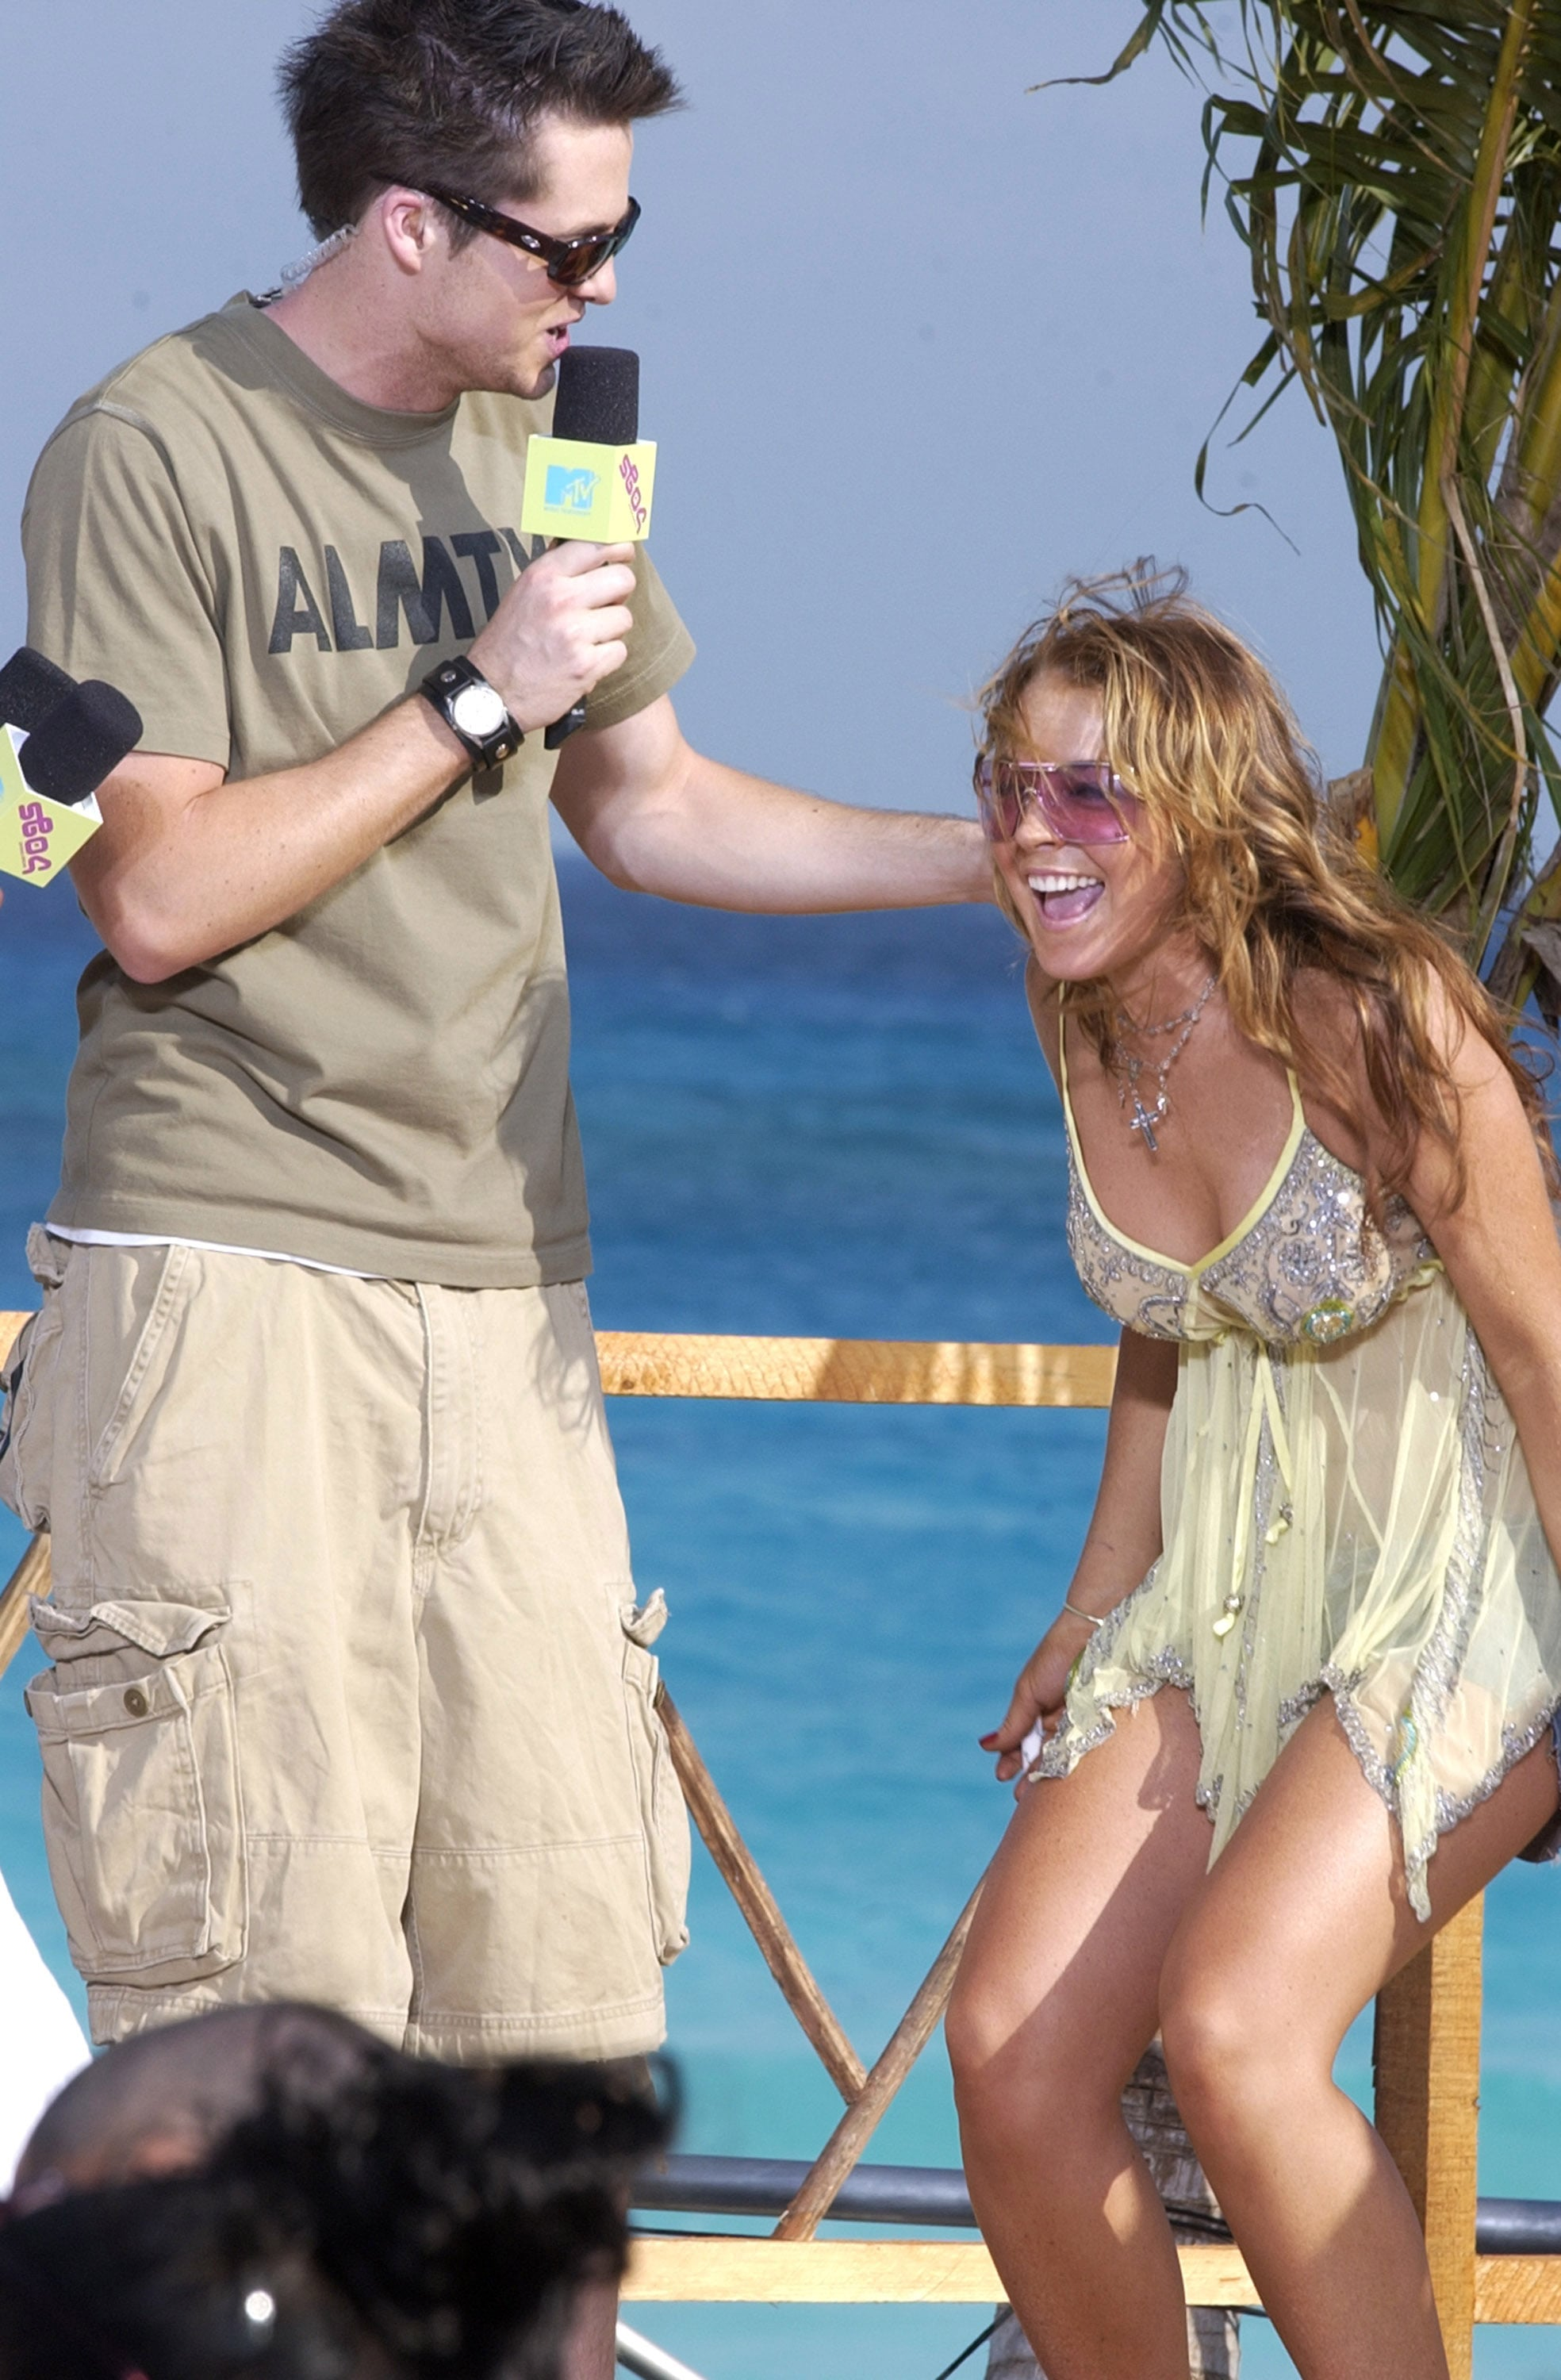 All the cool kids went to MTV's Spring Break in Cancun.